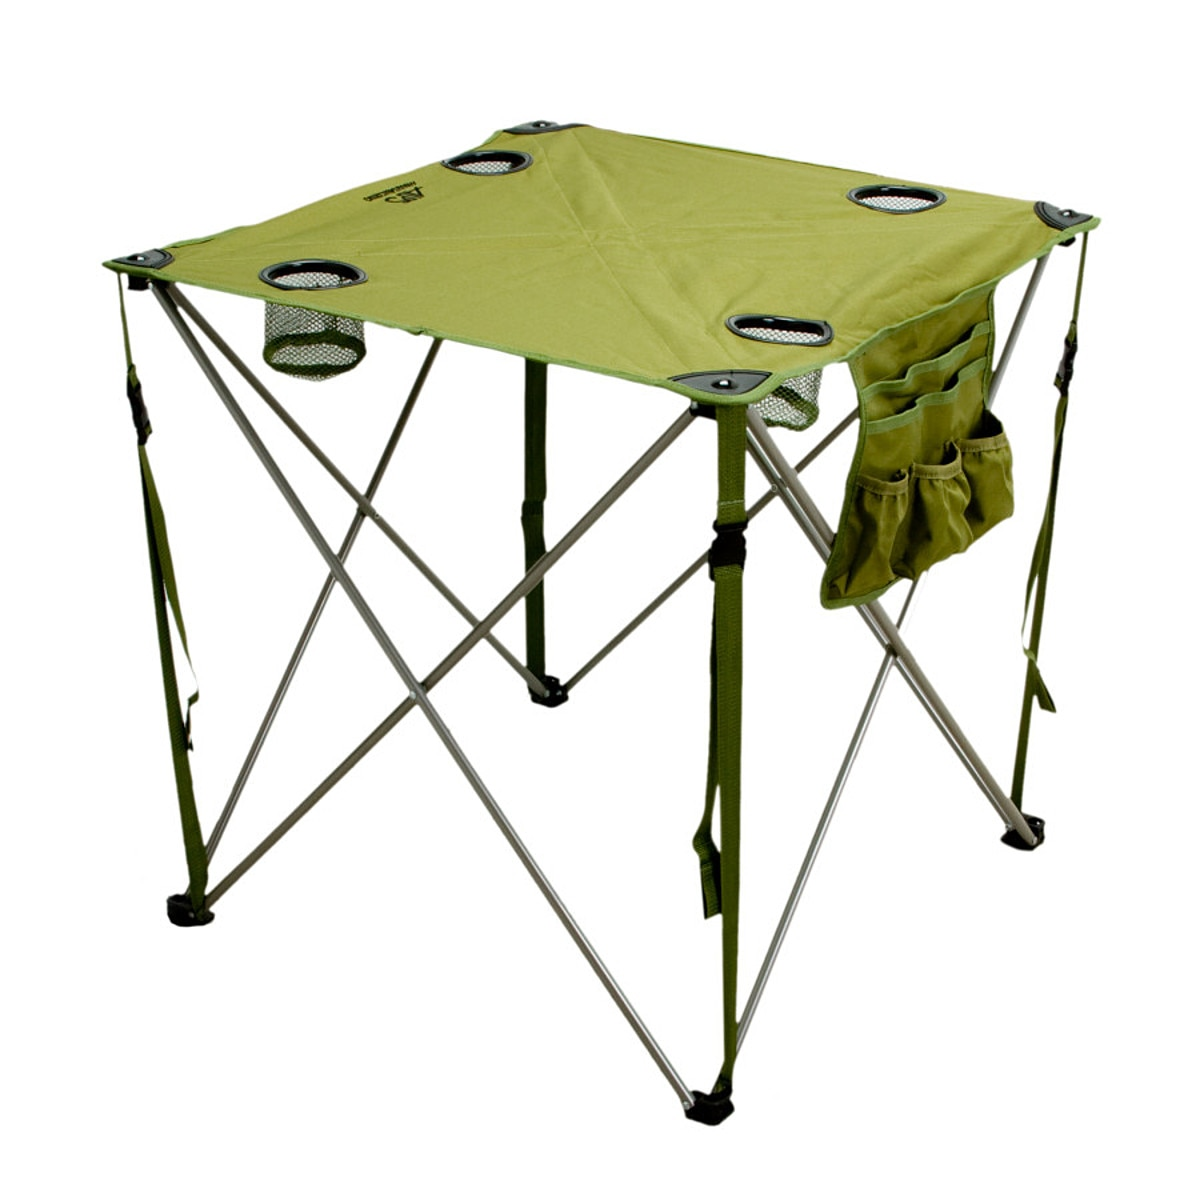 ALPS Mountaineering Chip Table Green, One Size